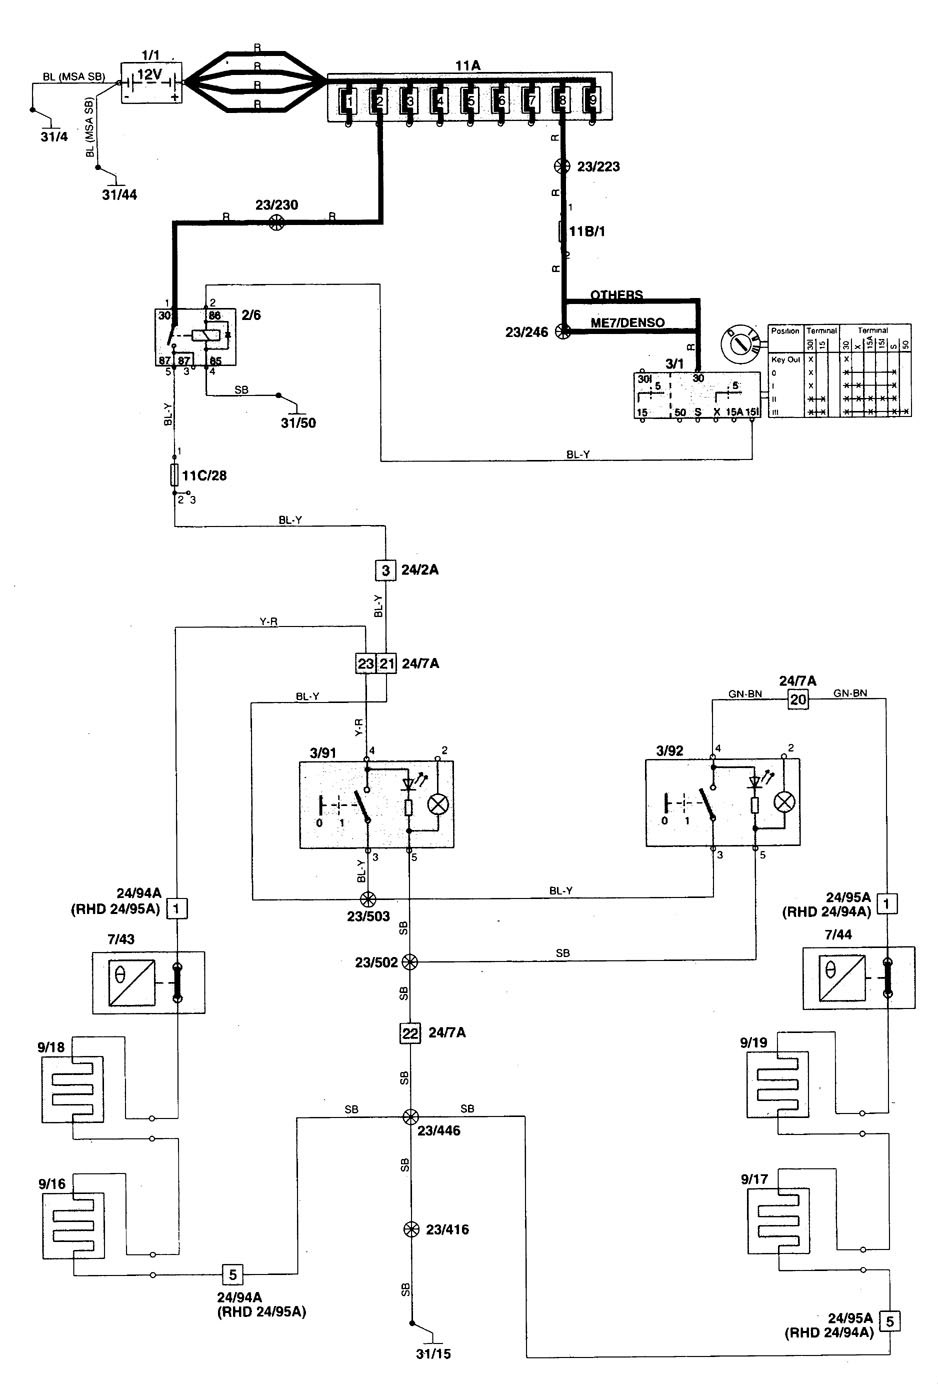 medium resolution of wiring diagram for 1998 v70 wiring diagram sheet 1998 volvo s70 wiring diagram component identification